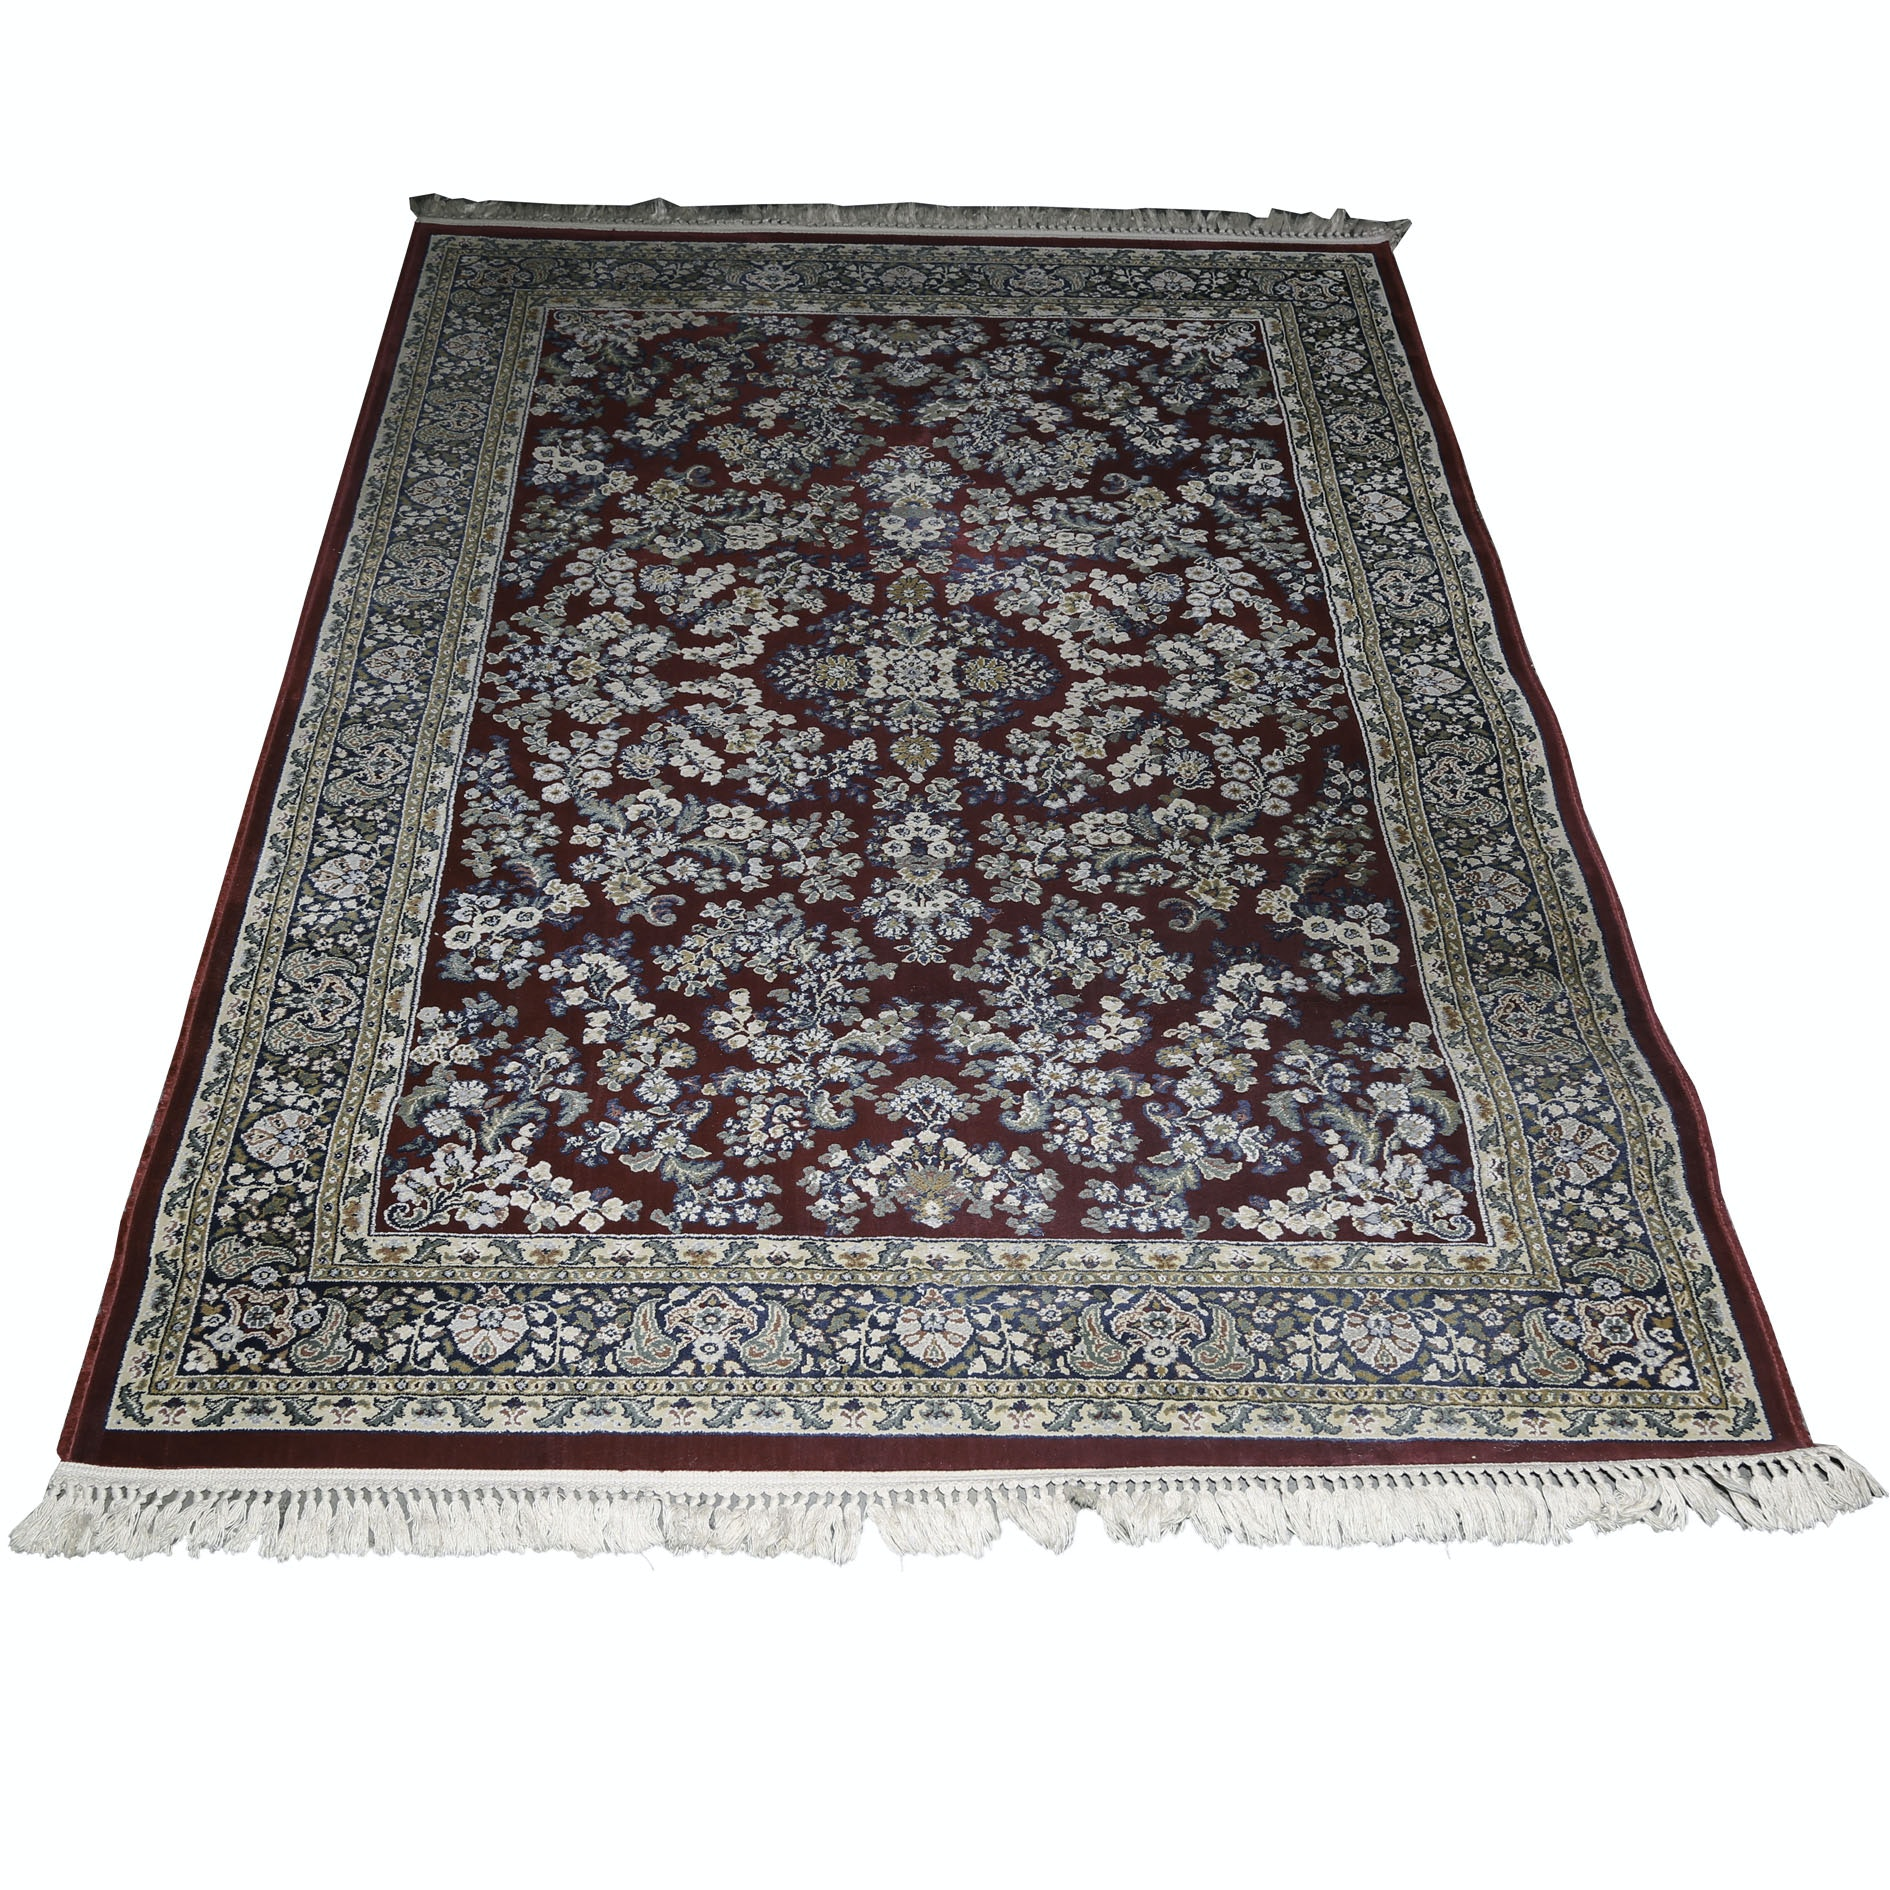 Machine Woven Persian Style Synthetic Area Rug by Burlington Industries